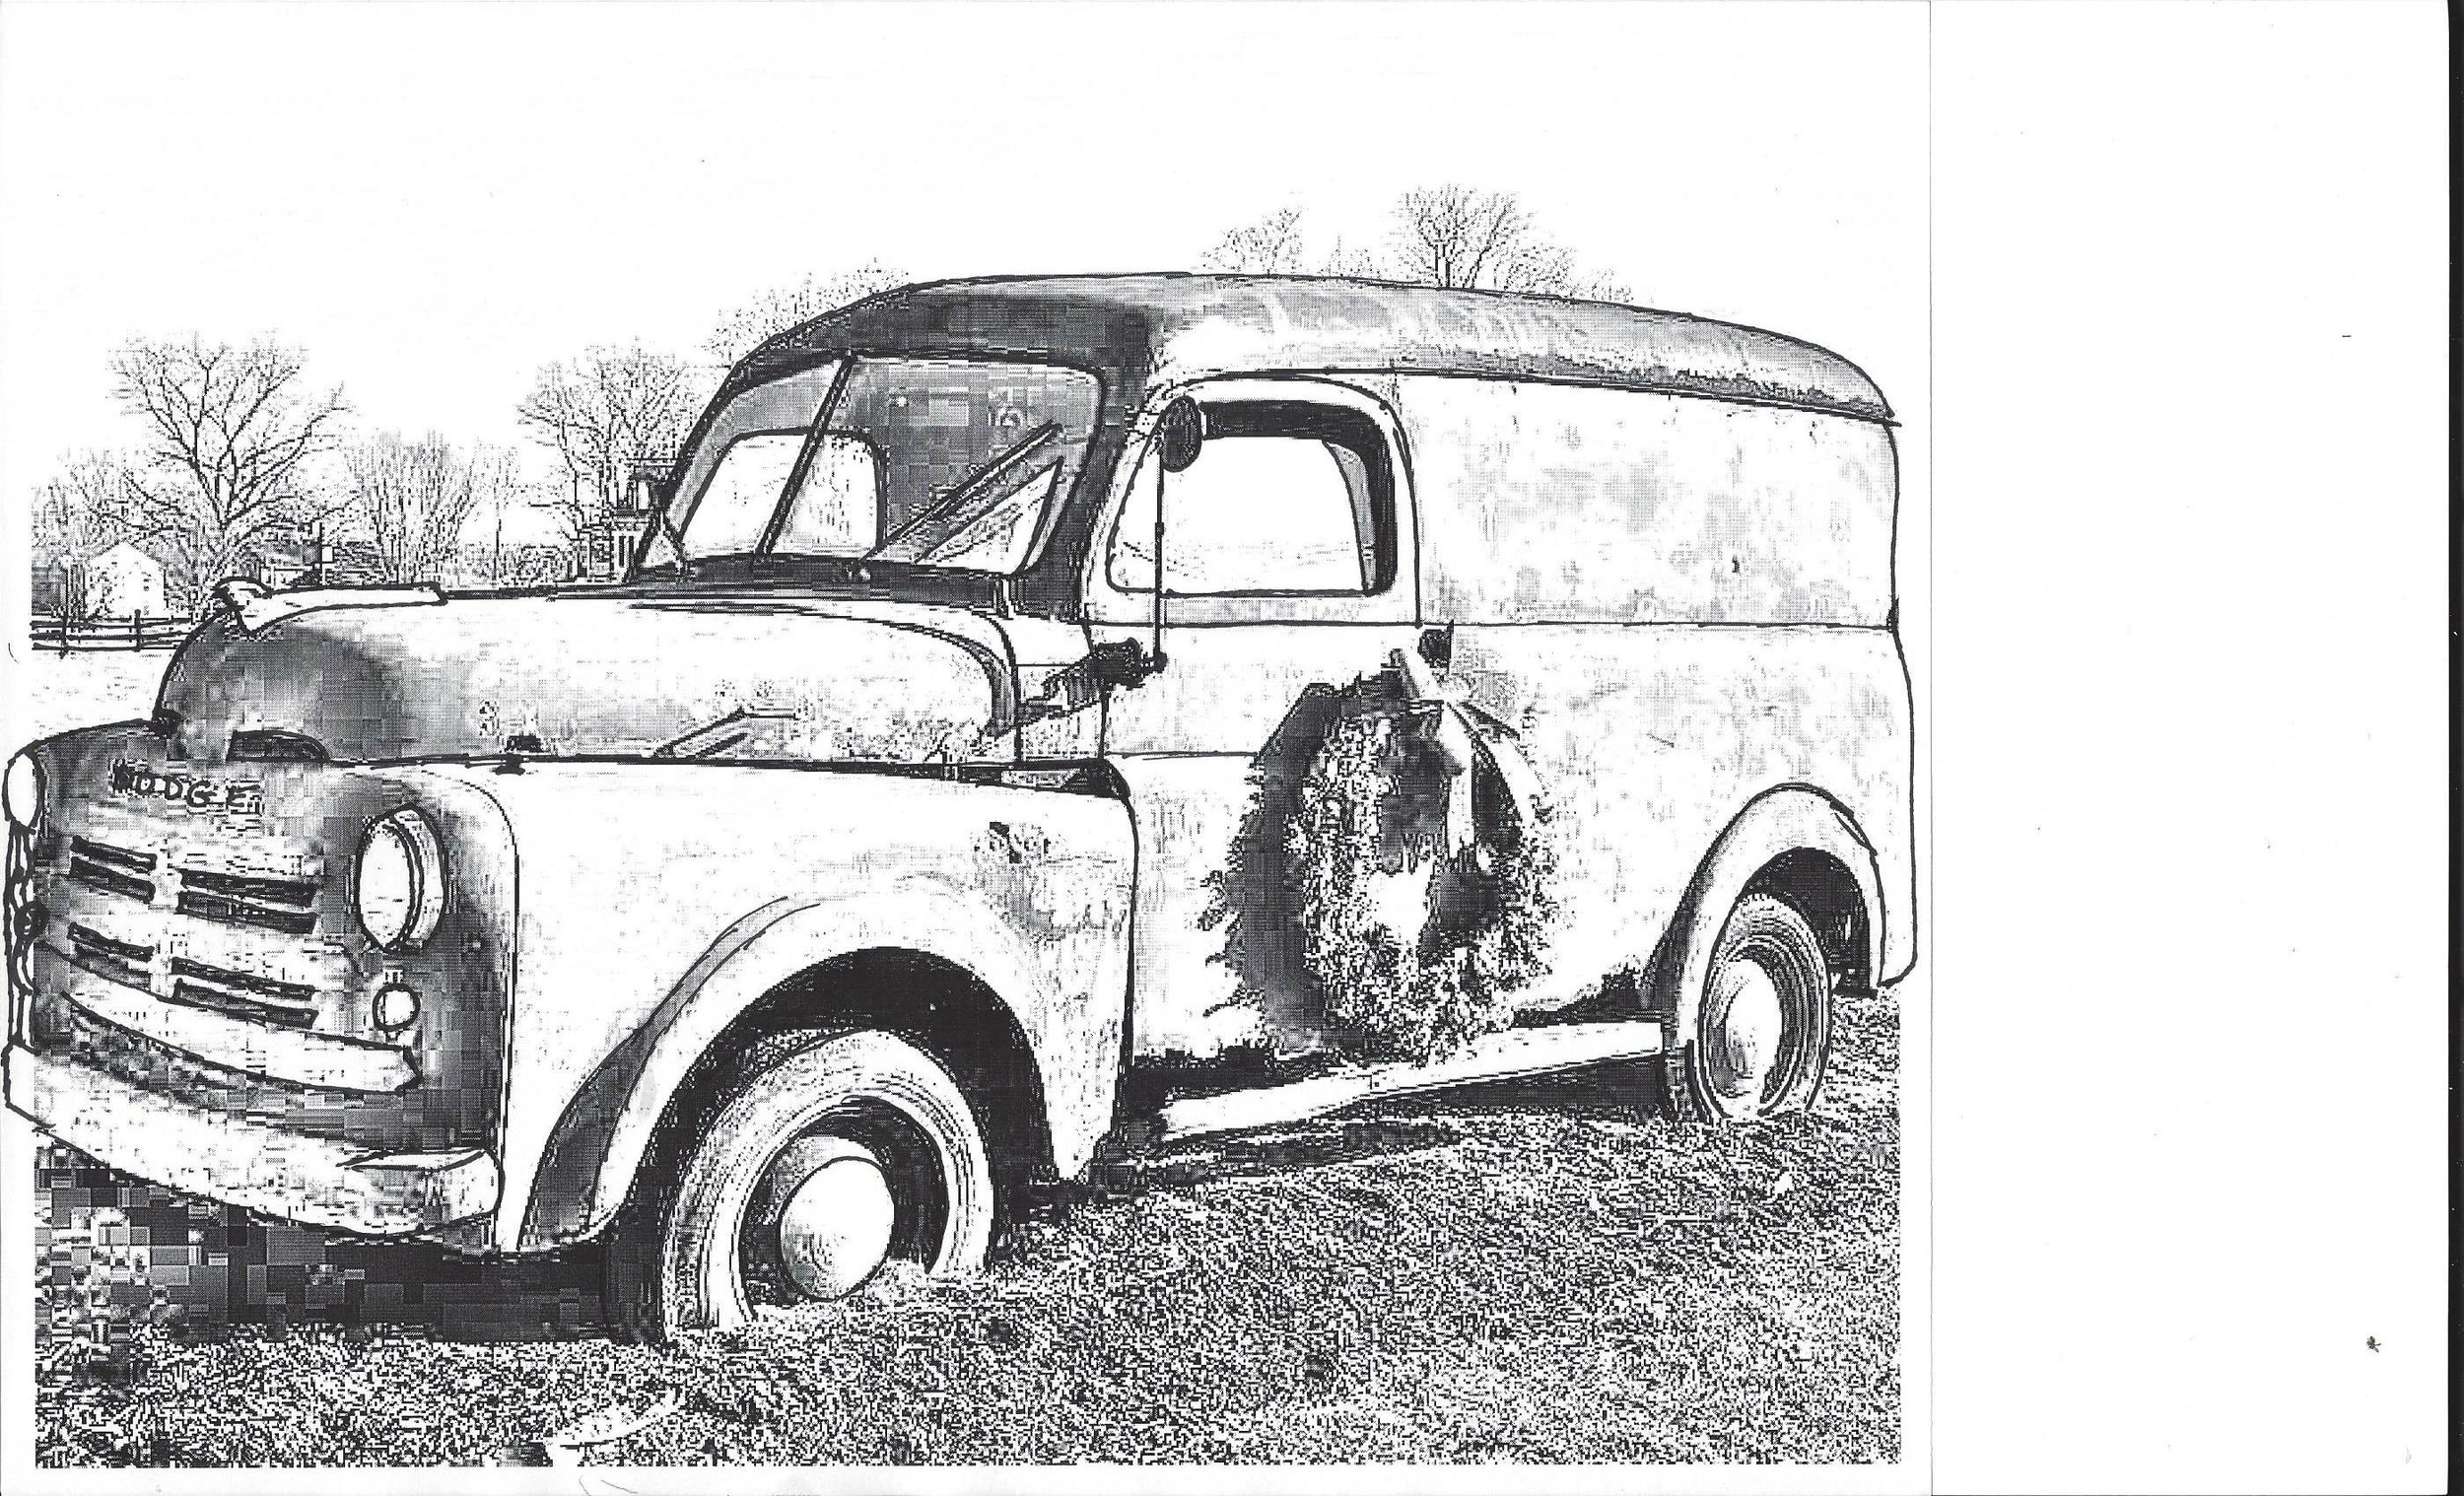 Newest sketching and planning for the Antique Dodge Truck Painting Soon